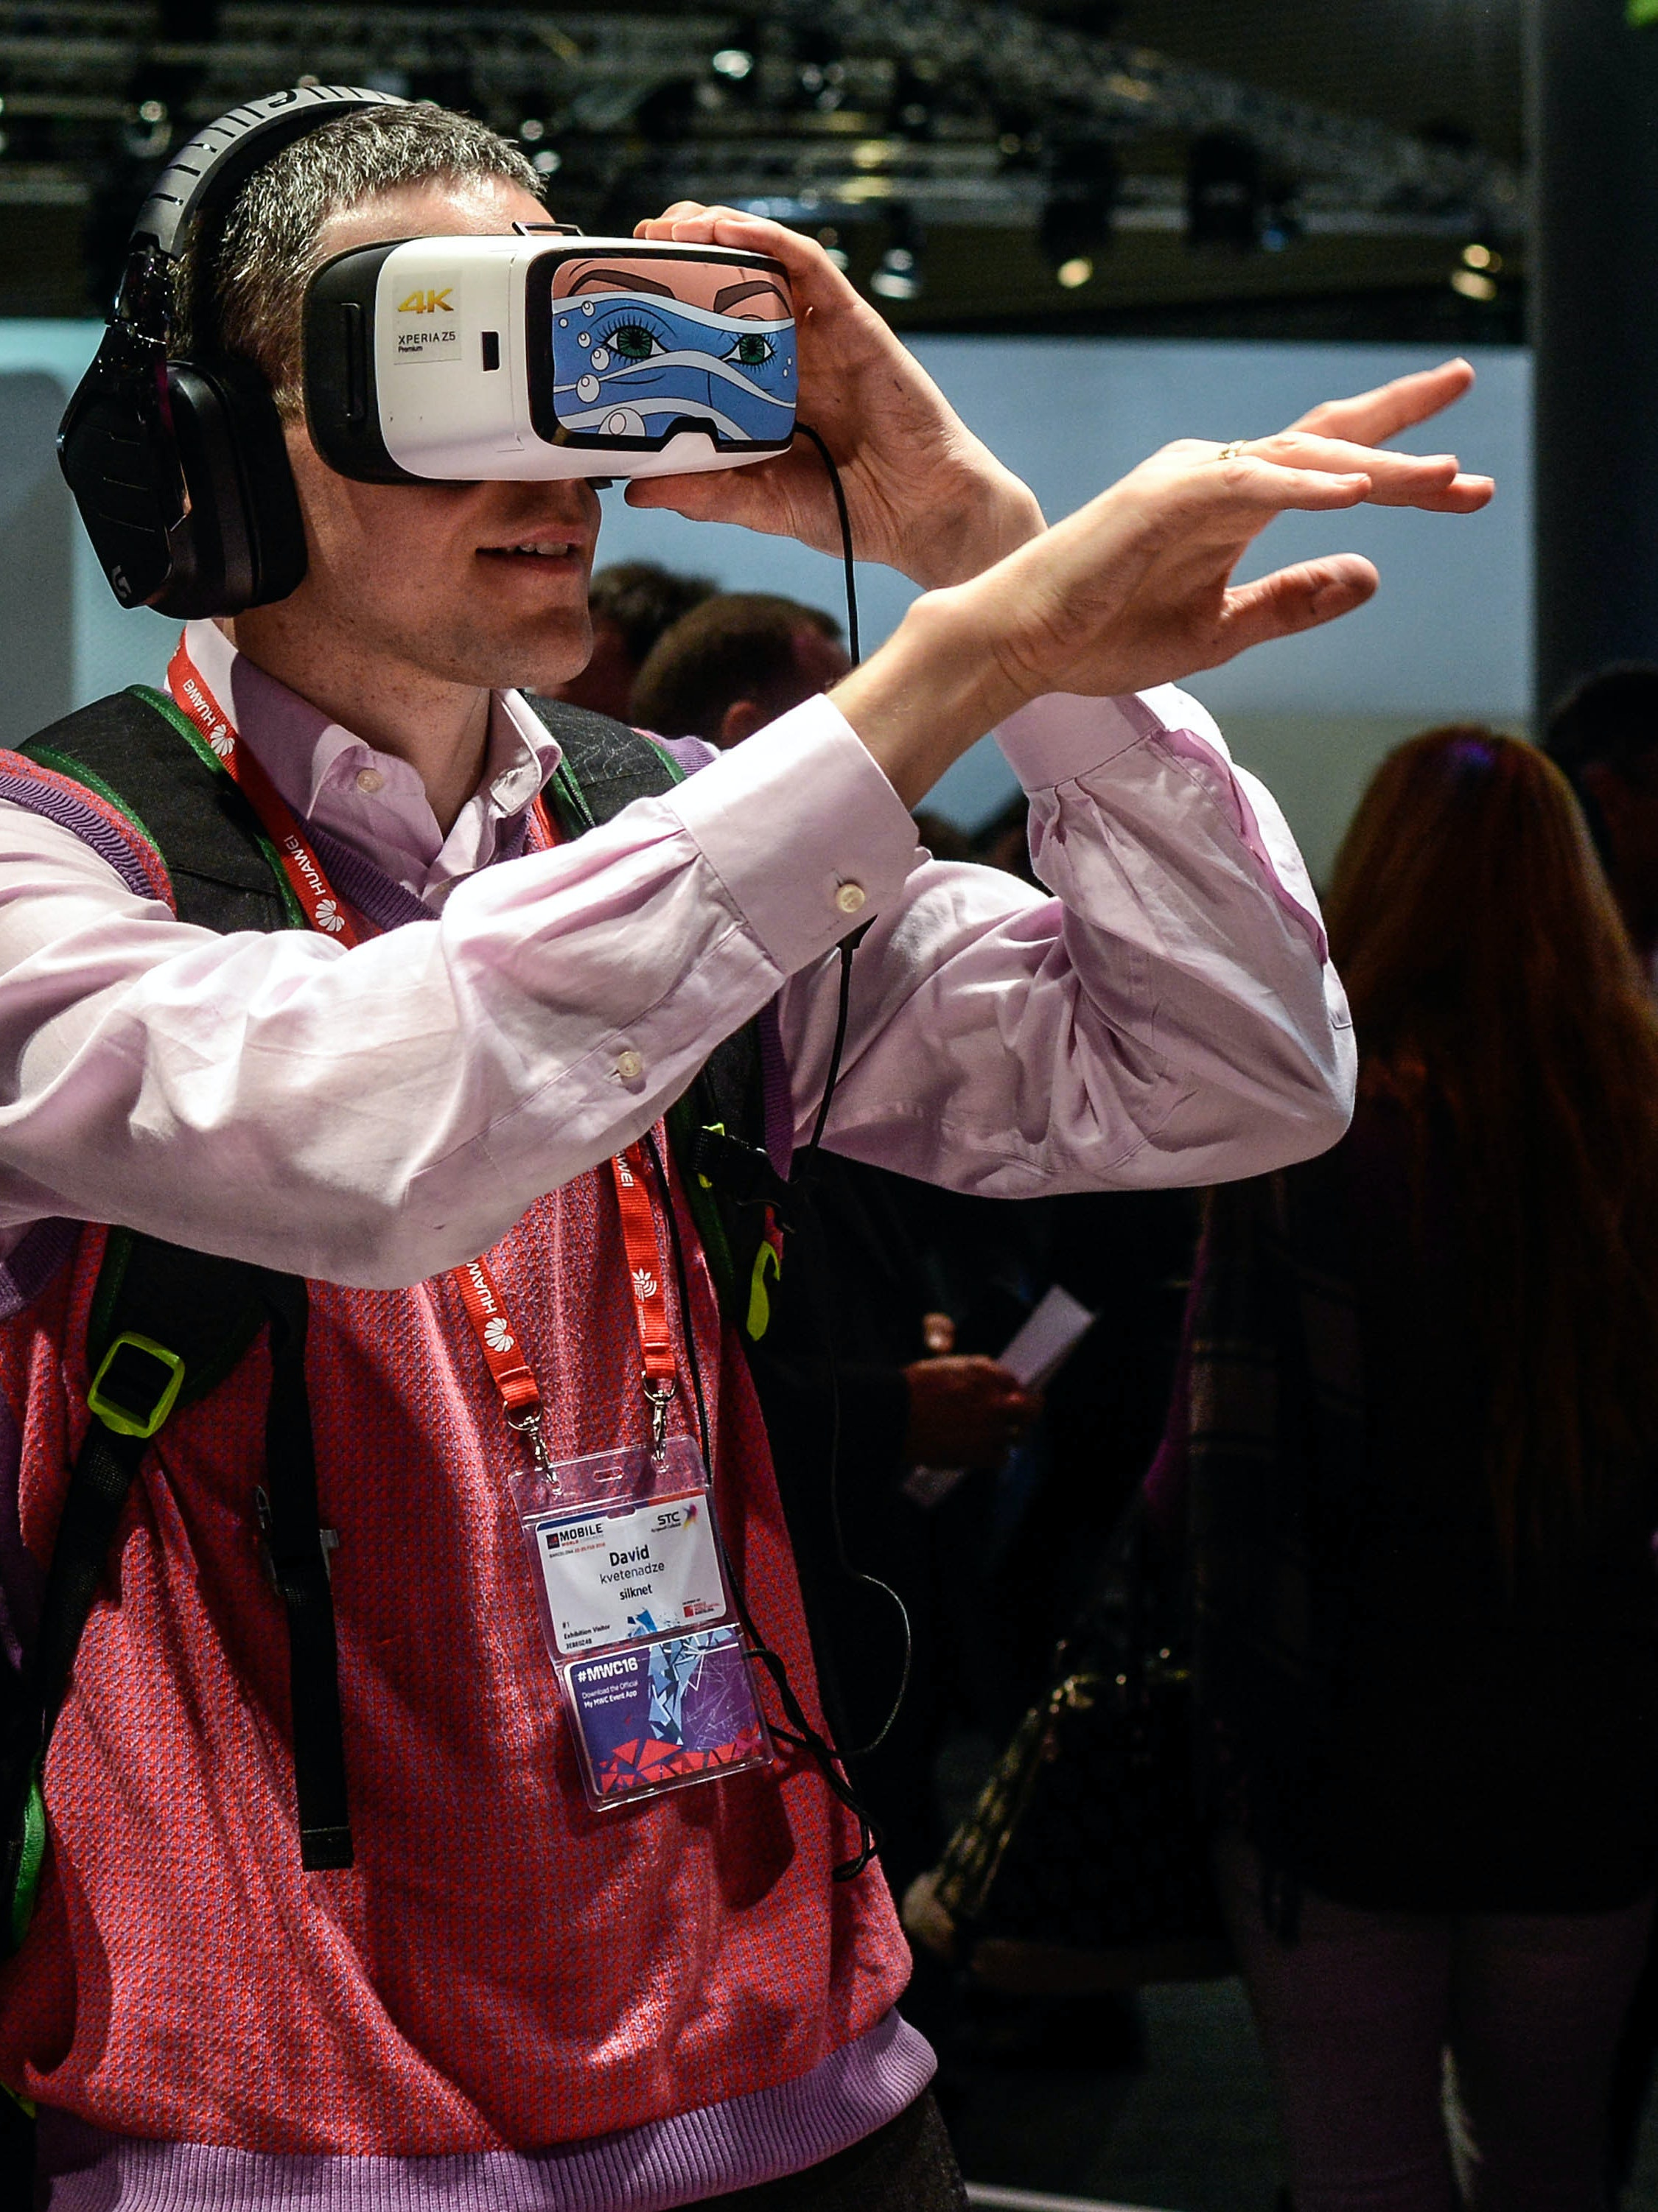 BARCELONA, SPAIN - FEBRUARY 23:  Visitors use Oculus VR virtual reality devices at Deutsche Telekom pavilion on the second day of the event at the Fira Gran Via Complex on day 2 of the Mobile World Congress on February 23, 2016 in Barcelona, Spain. The annual Mobile World Congress hosts some of the world's largest communications companies, with many unveiling their latest phones and wearables gadgets.  (Photo by David Ramos/Getty Images)